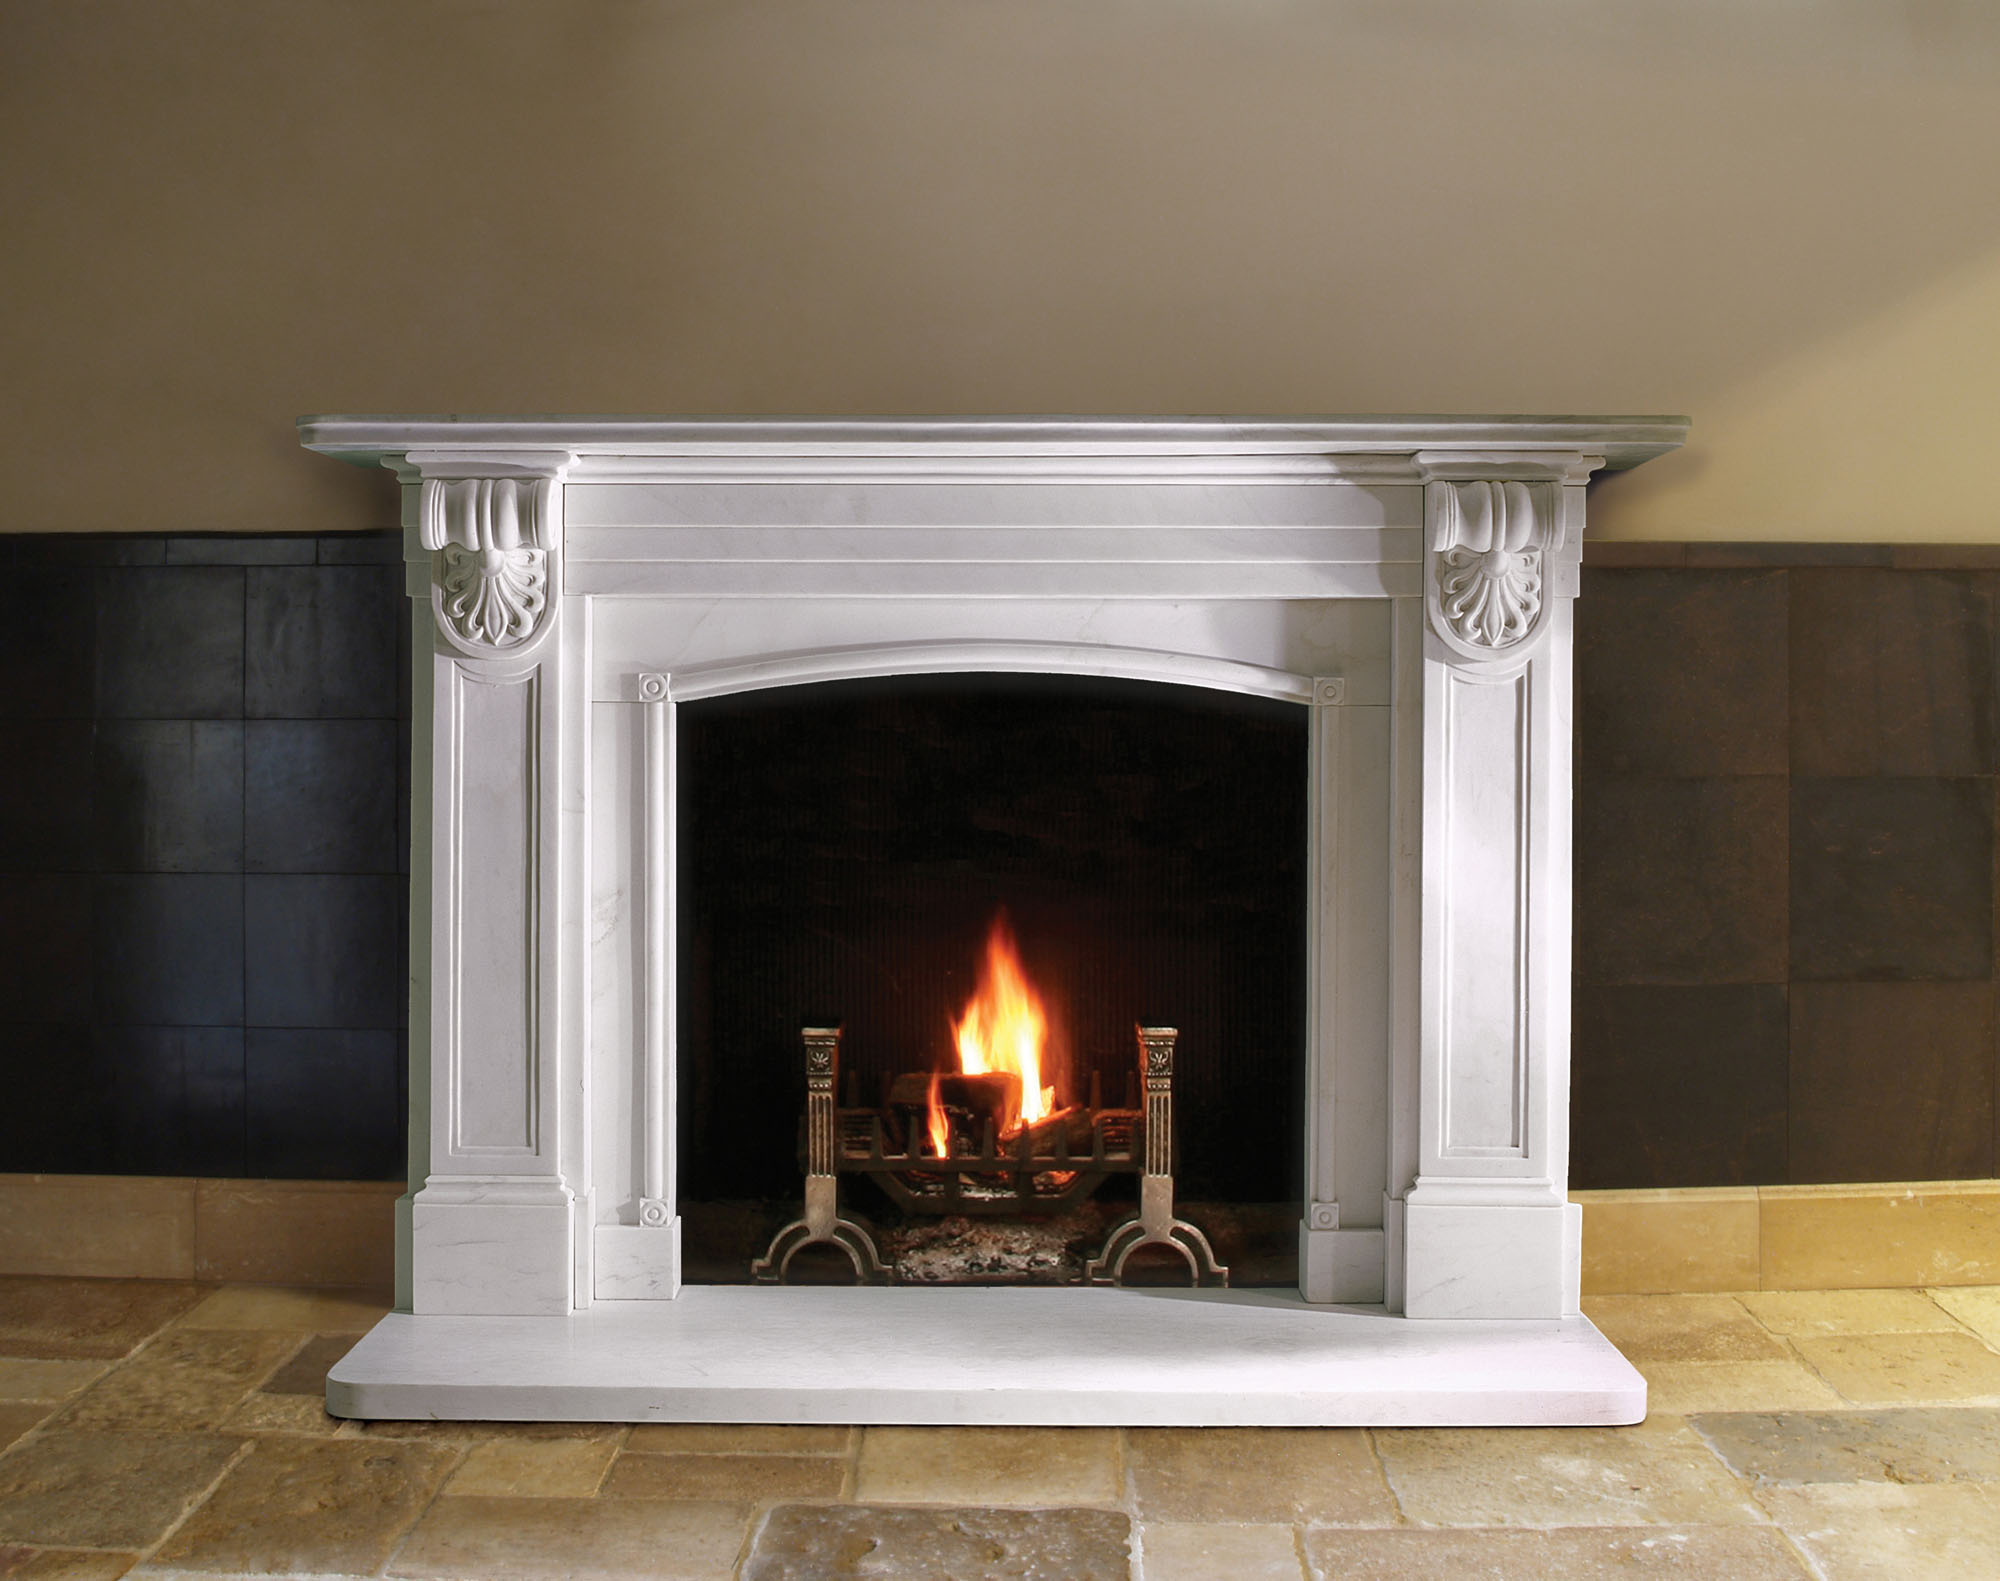 Choosing a hearth for a stone fireplace martin moore stone for Choosing a fireplace